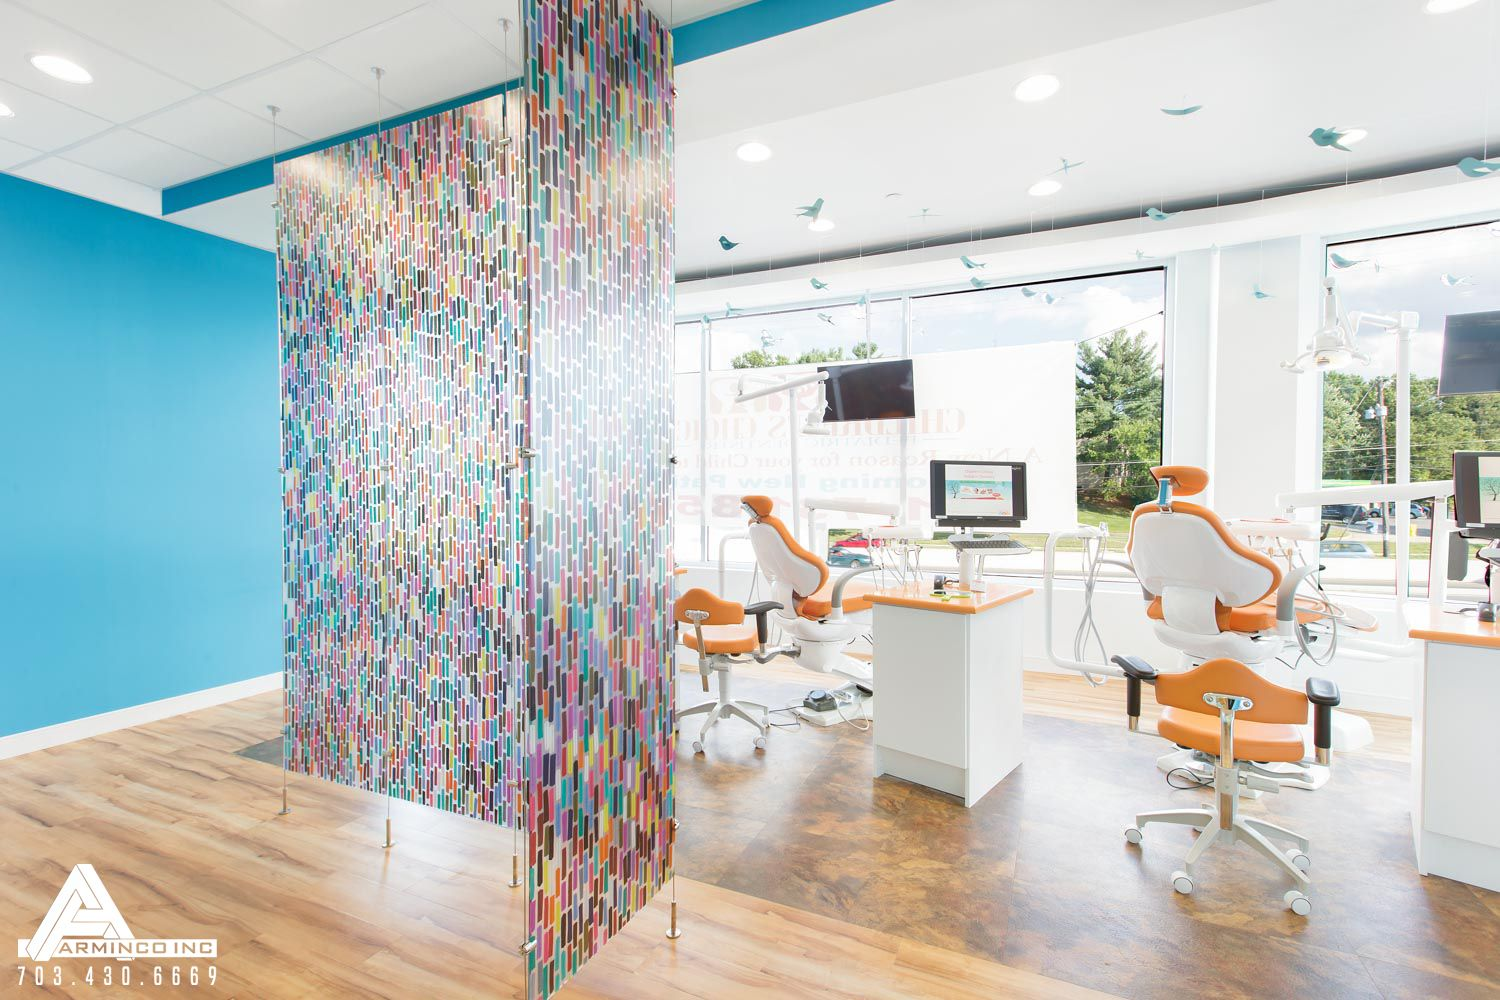 Pin By Interior Designer In A Box On Kids Teenager: Fun Confetti 3Form Dividers. Dental Office Design By